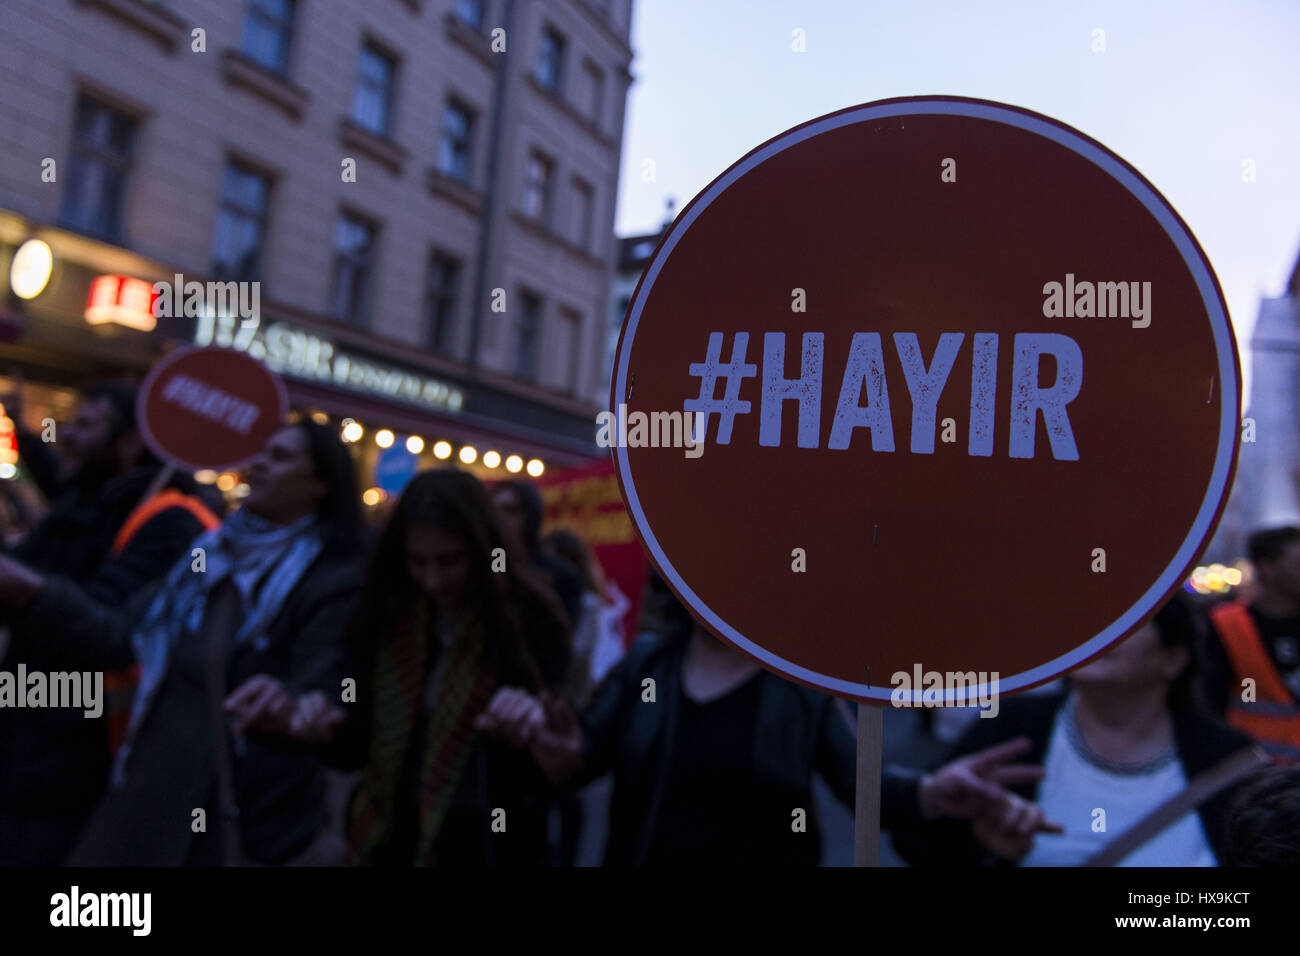 Berlin, Germany. 25th Mar, 2017. Opponents of RECEP TAYYIP ERDOGAN, President of Turkey, holding signs with the inscription '#Hayir'. Several hundred people rally in Berlin Neukoelln and Kreuzberg, the protesters damand a No vote in the constitutional referendum in Turkey, where Turks living in Germany are allowed to vote. Credit: Jan Scheunert/ZUMA Wire/Alamy Live News Stock Photo